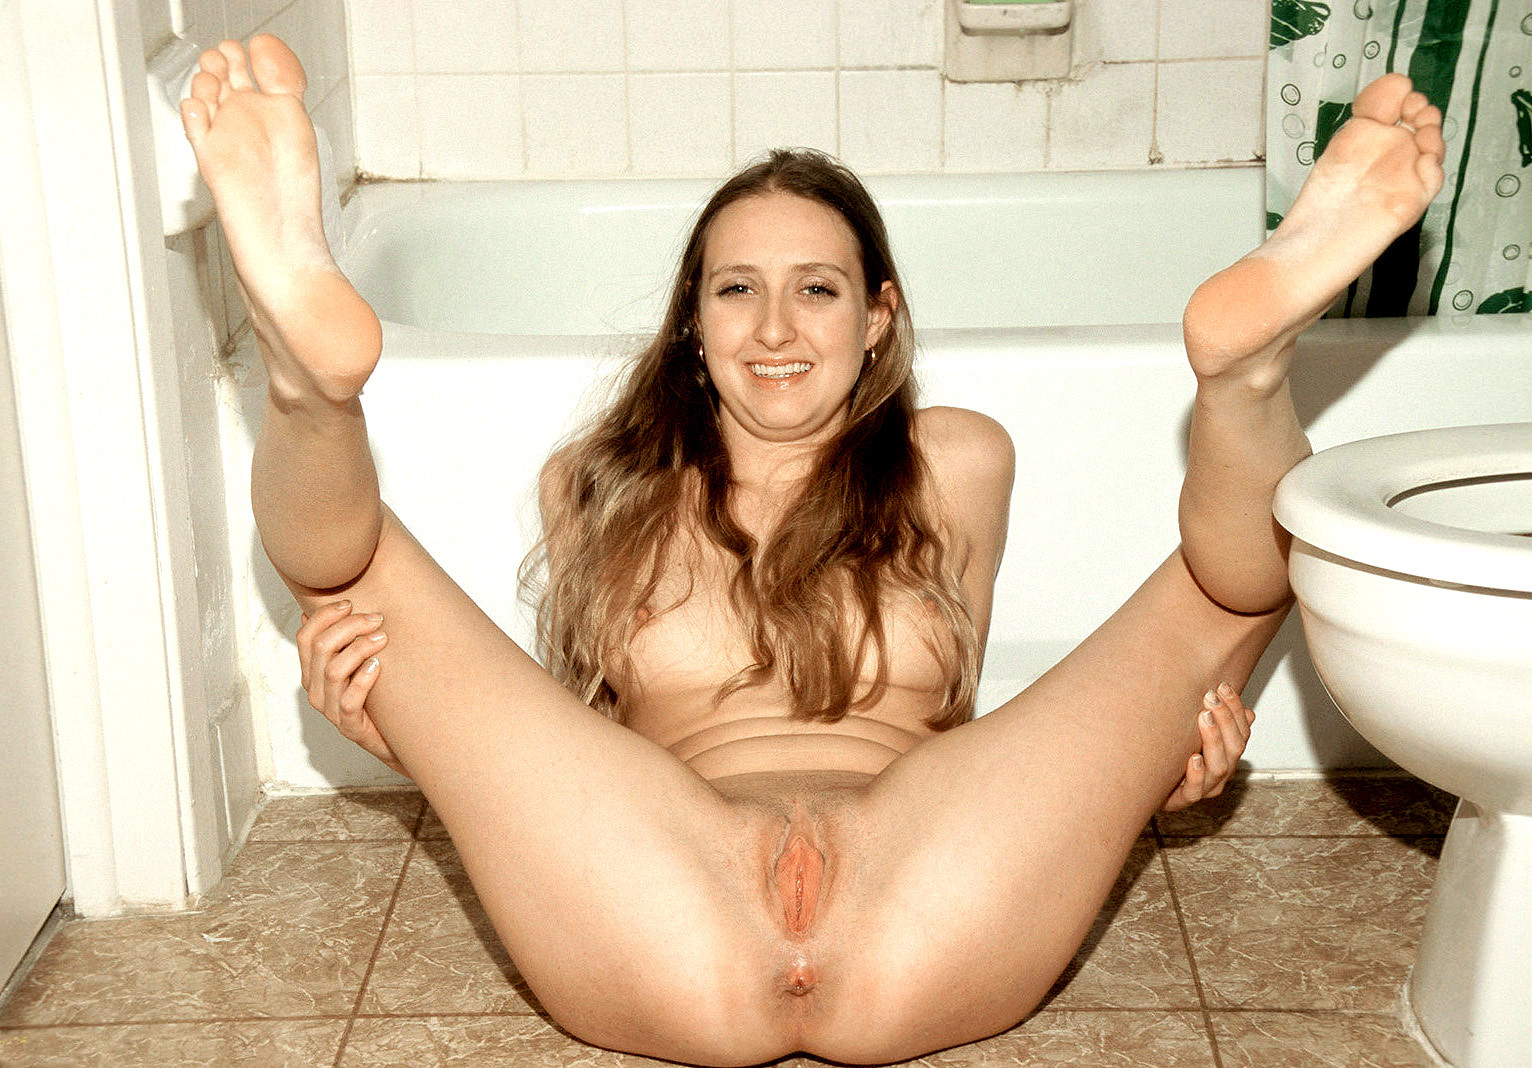 The naked spread eagle with feet